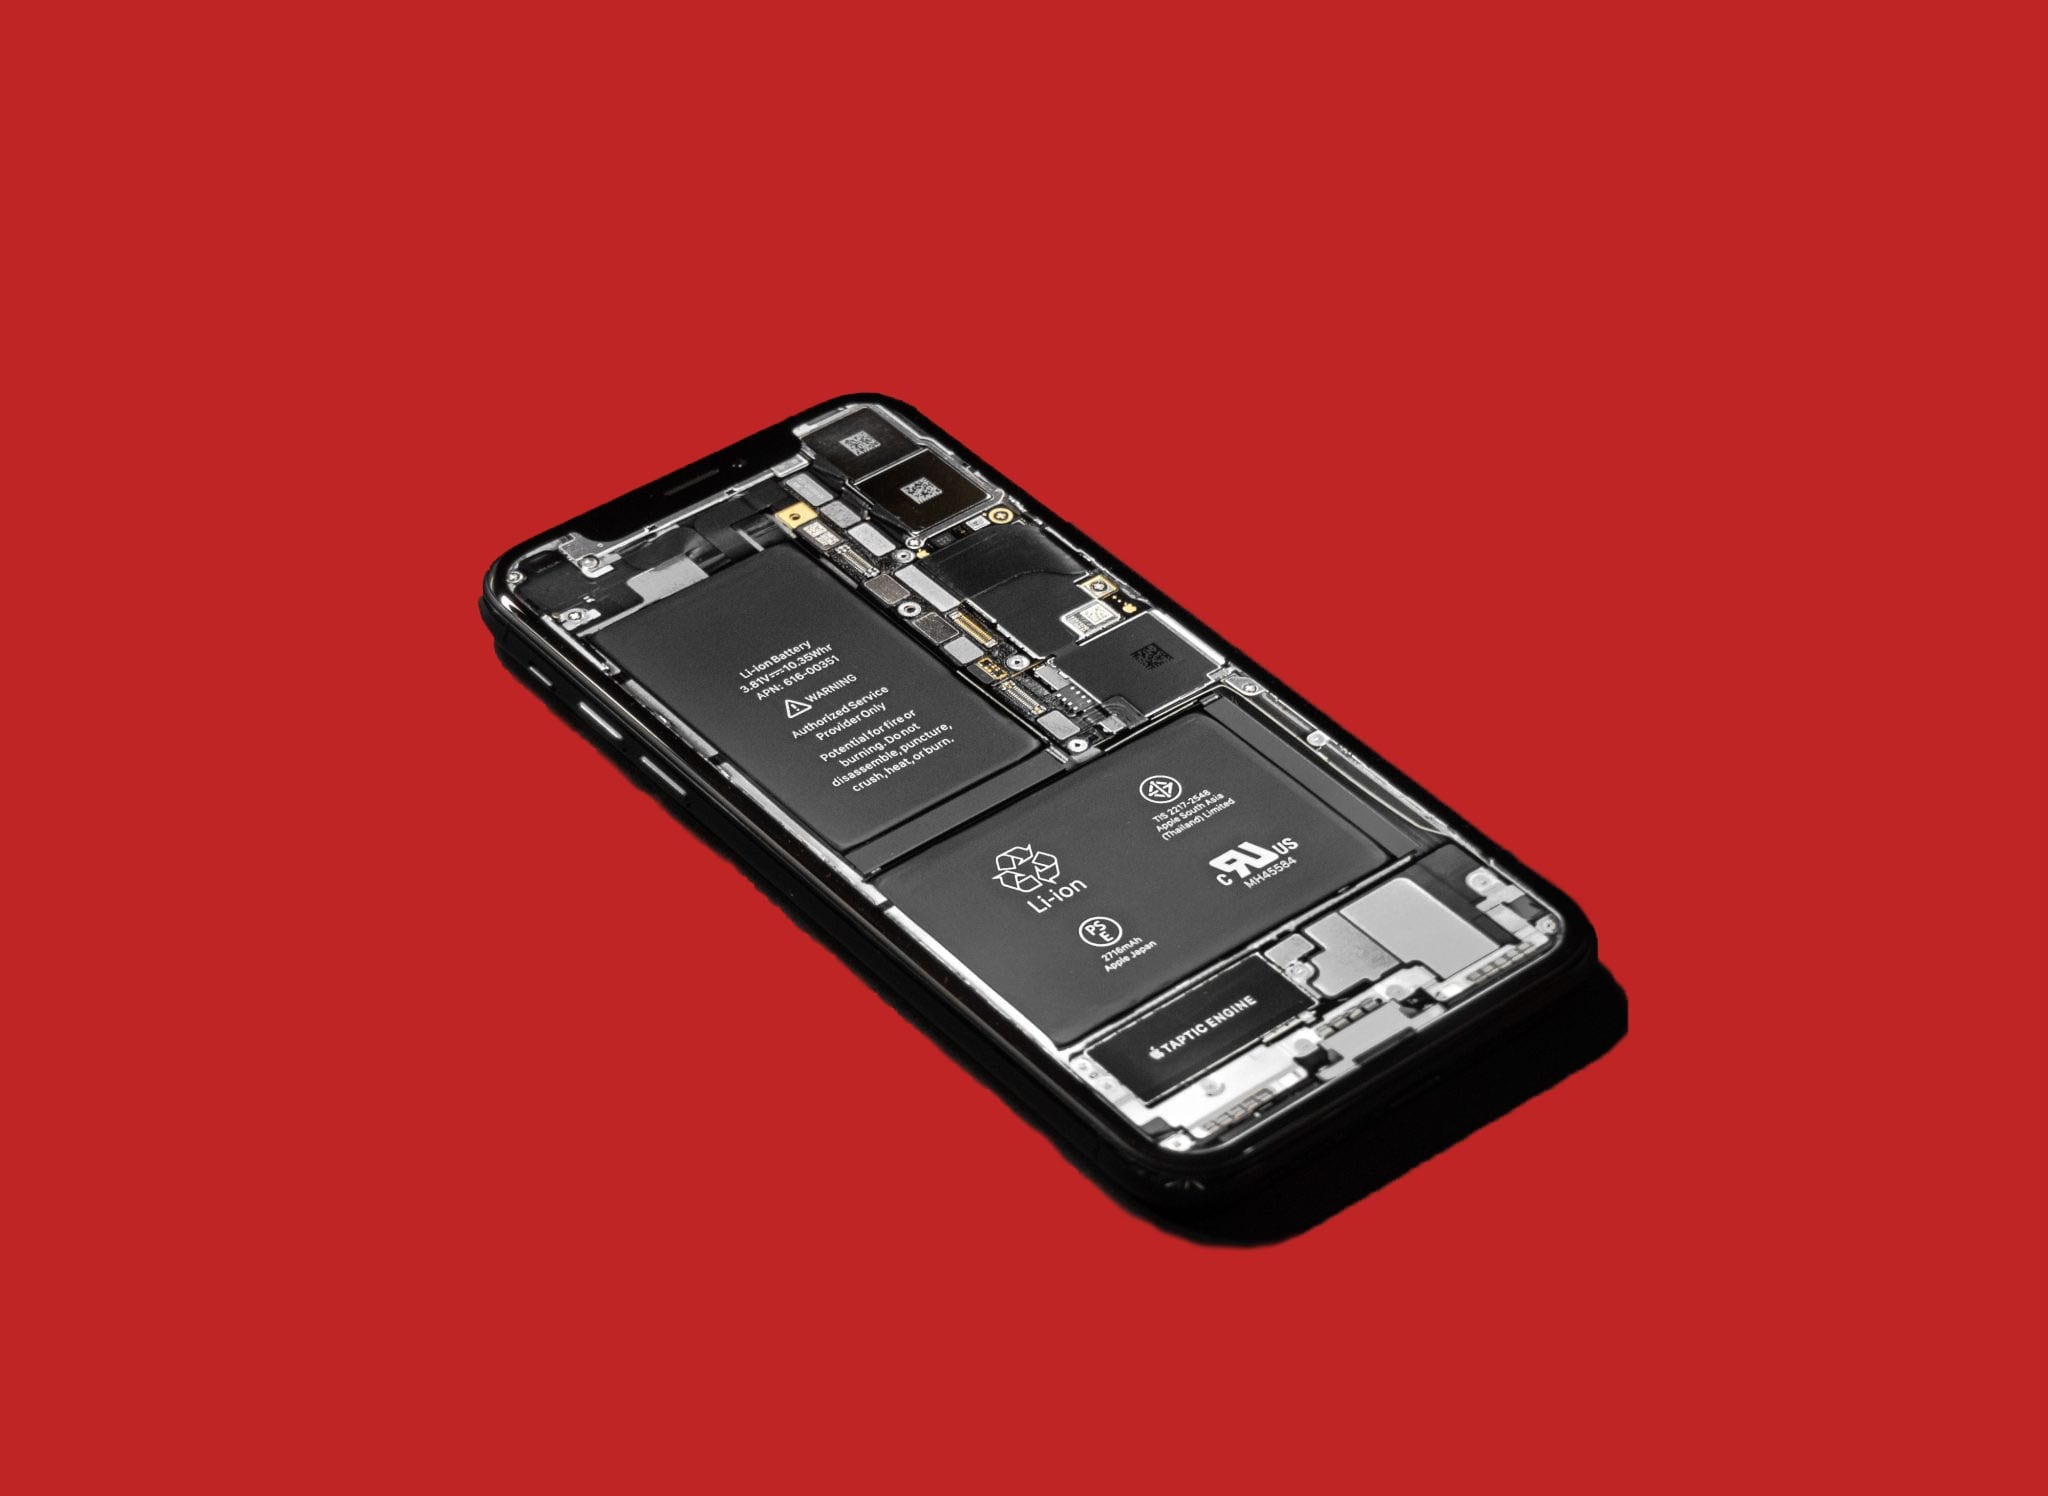 info for b5b1c a06a4 iPhone X overheats while charging: What to do? | Mobile Internist